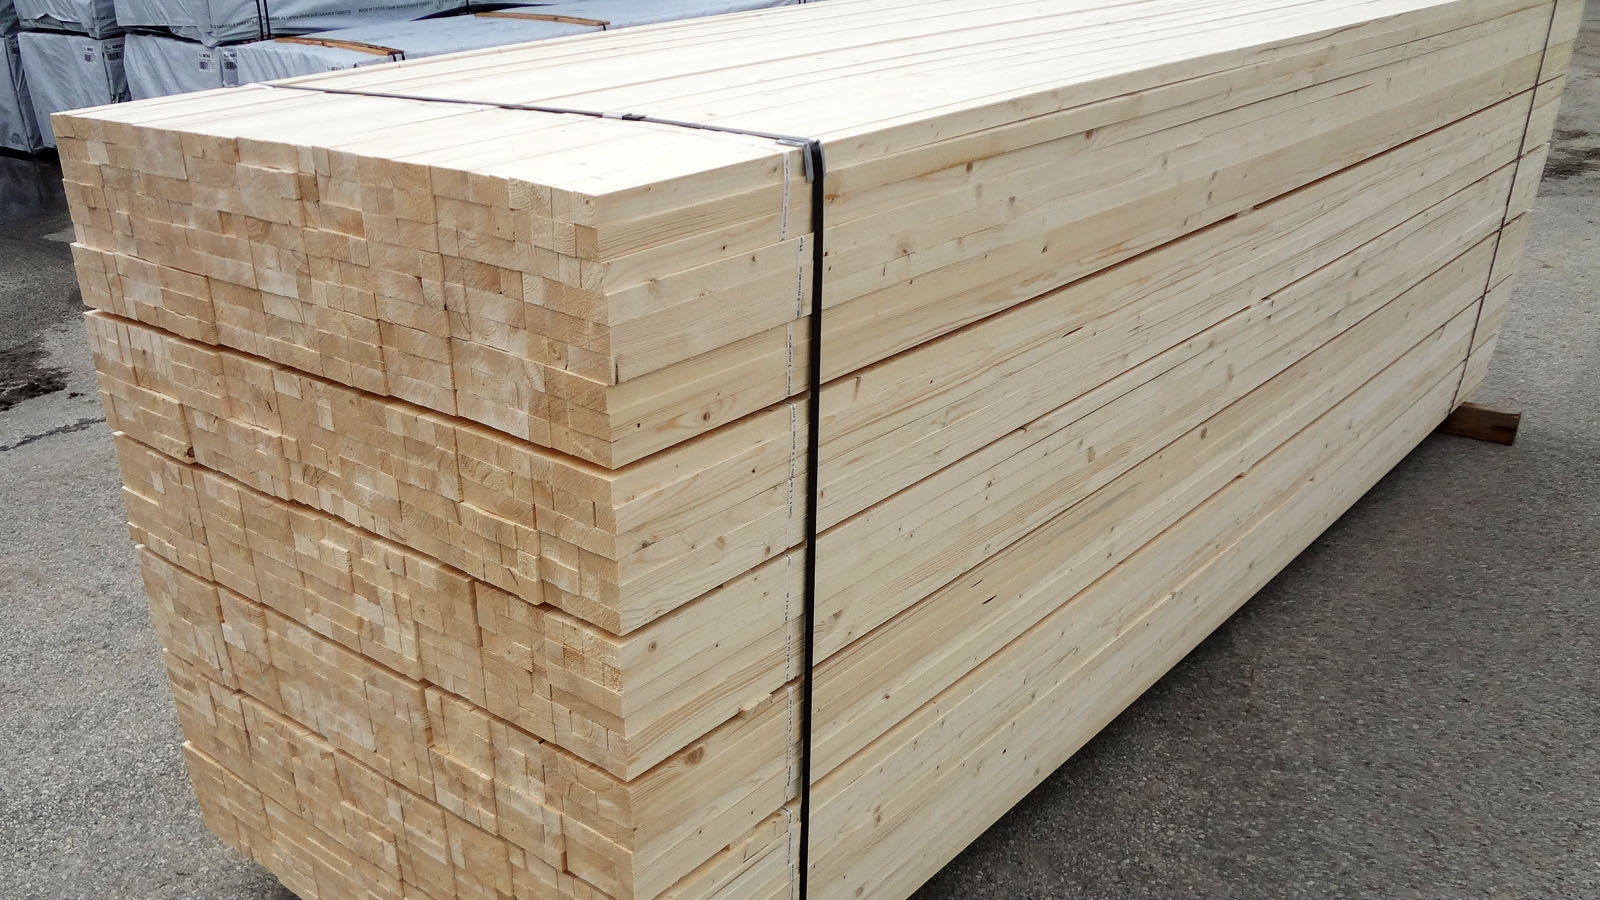 2-construction-battens-nothern-europe-timber-production-lameko-impex